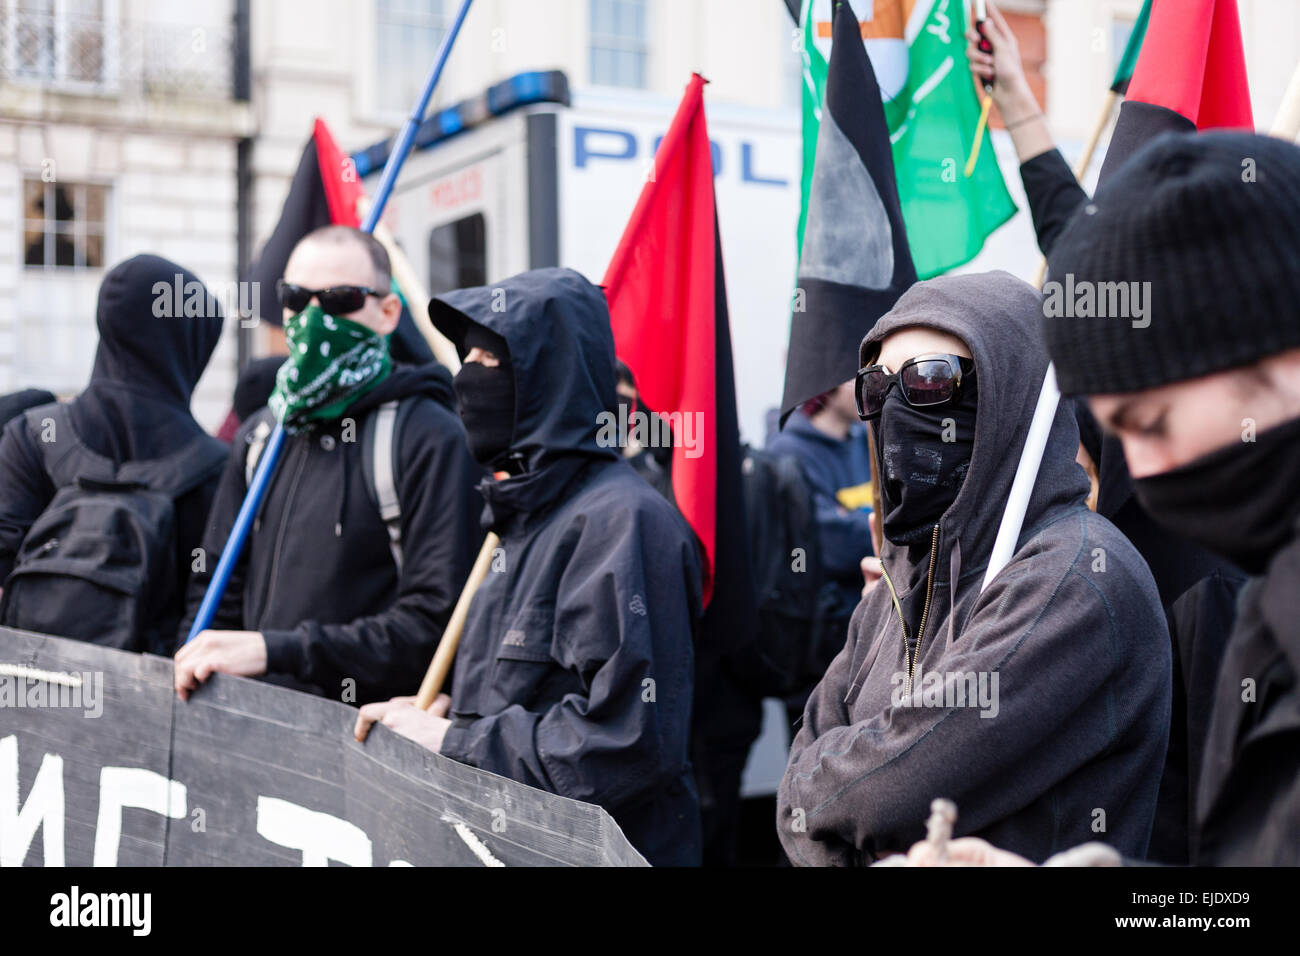 'Black-bloc' anti-capitalist protesters assemble in Lincoln's Inn Fields in central London ahead of a climate change - Stock Image